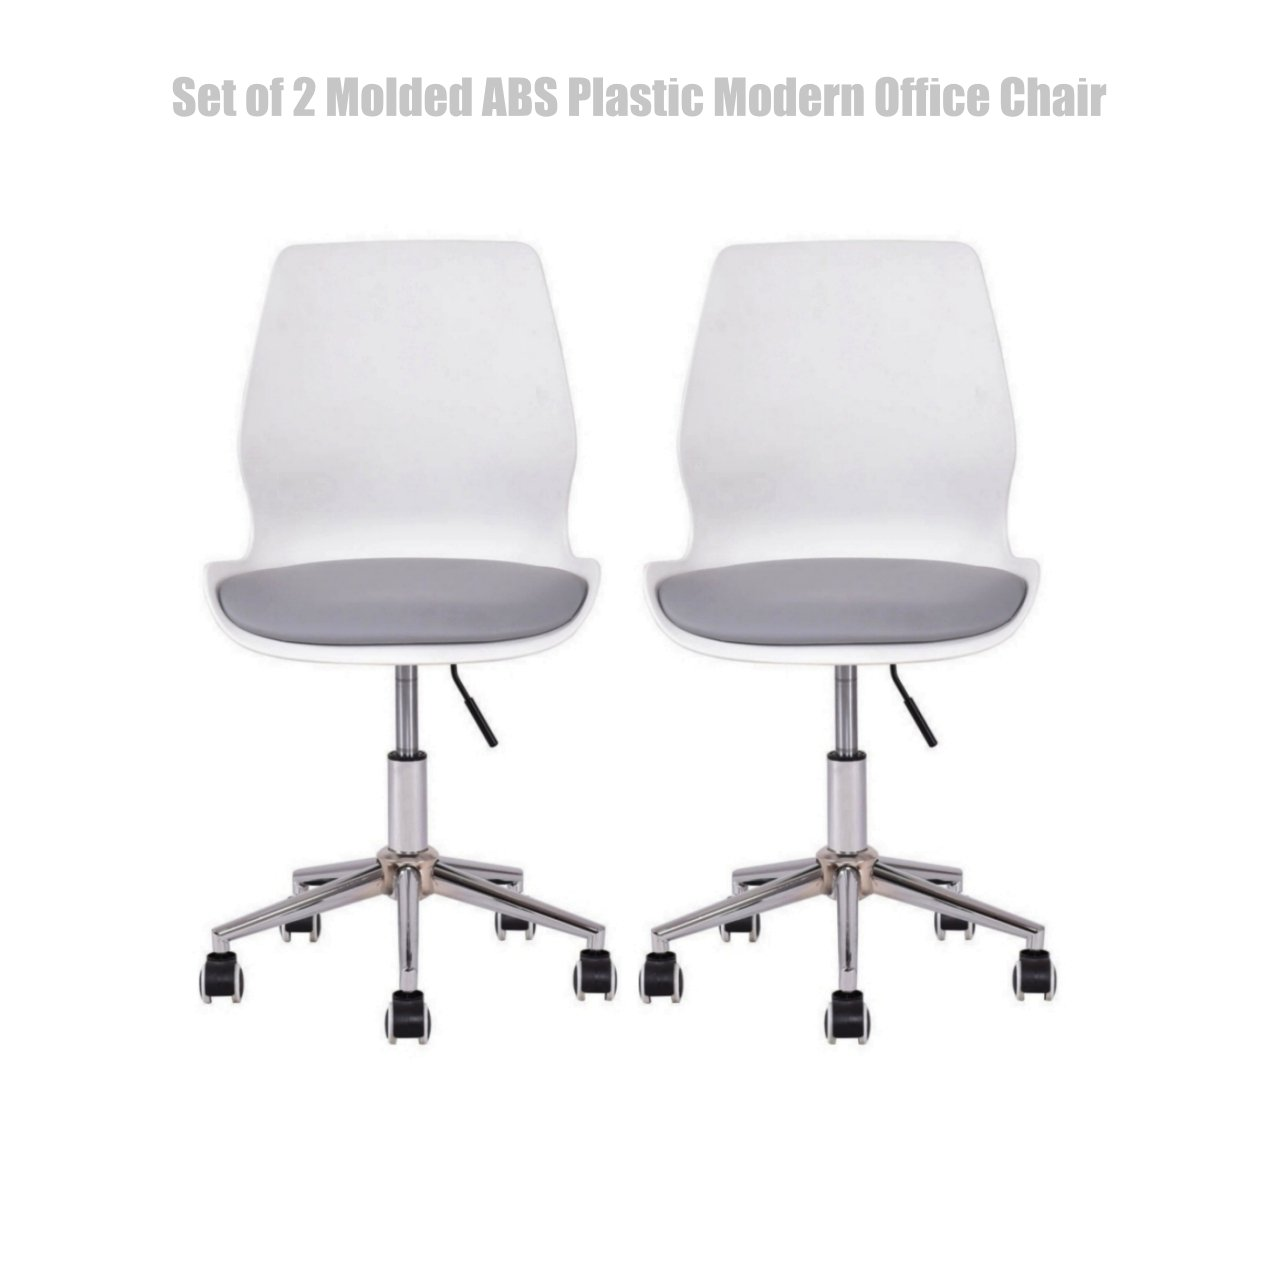 Modern Molded Chair Height Adjustable Upholstered Side Chair Swivel Mid Century Heavy Duty ABS Plastic Durable PU Seat Side Chair - Set of 2 White #1454